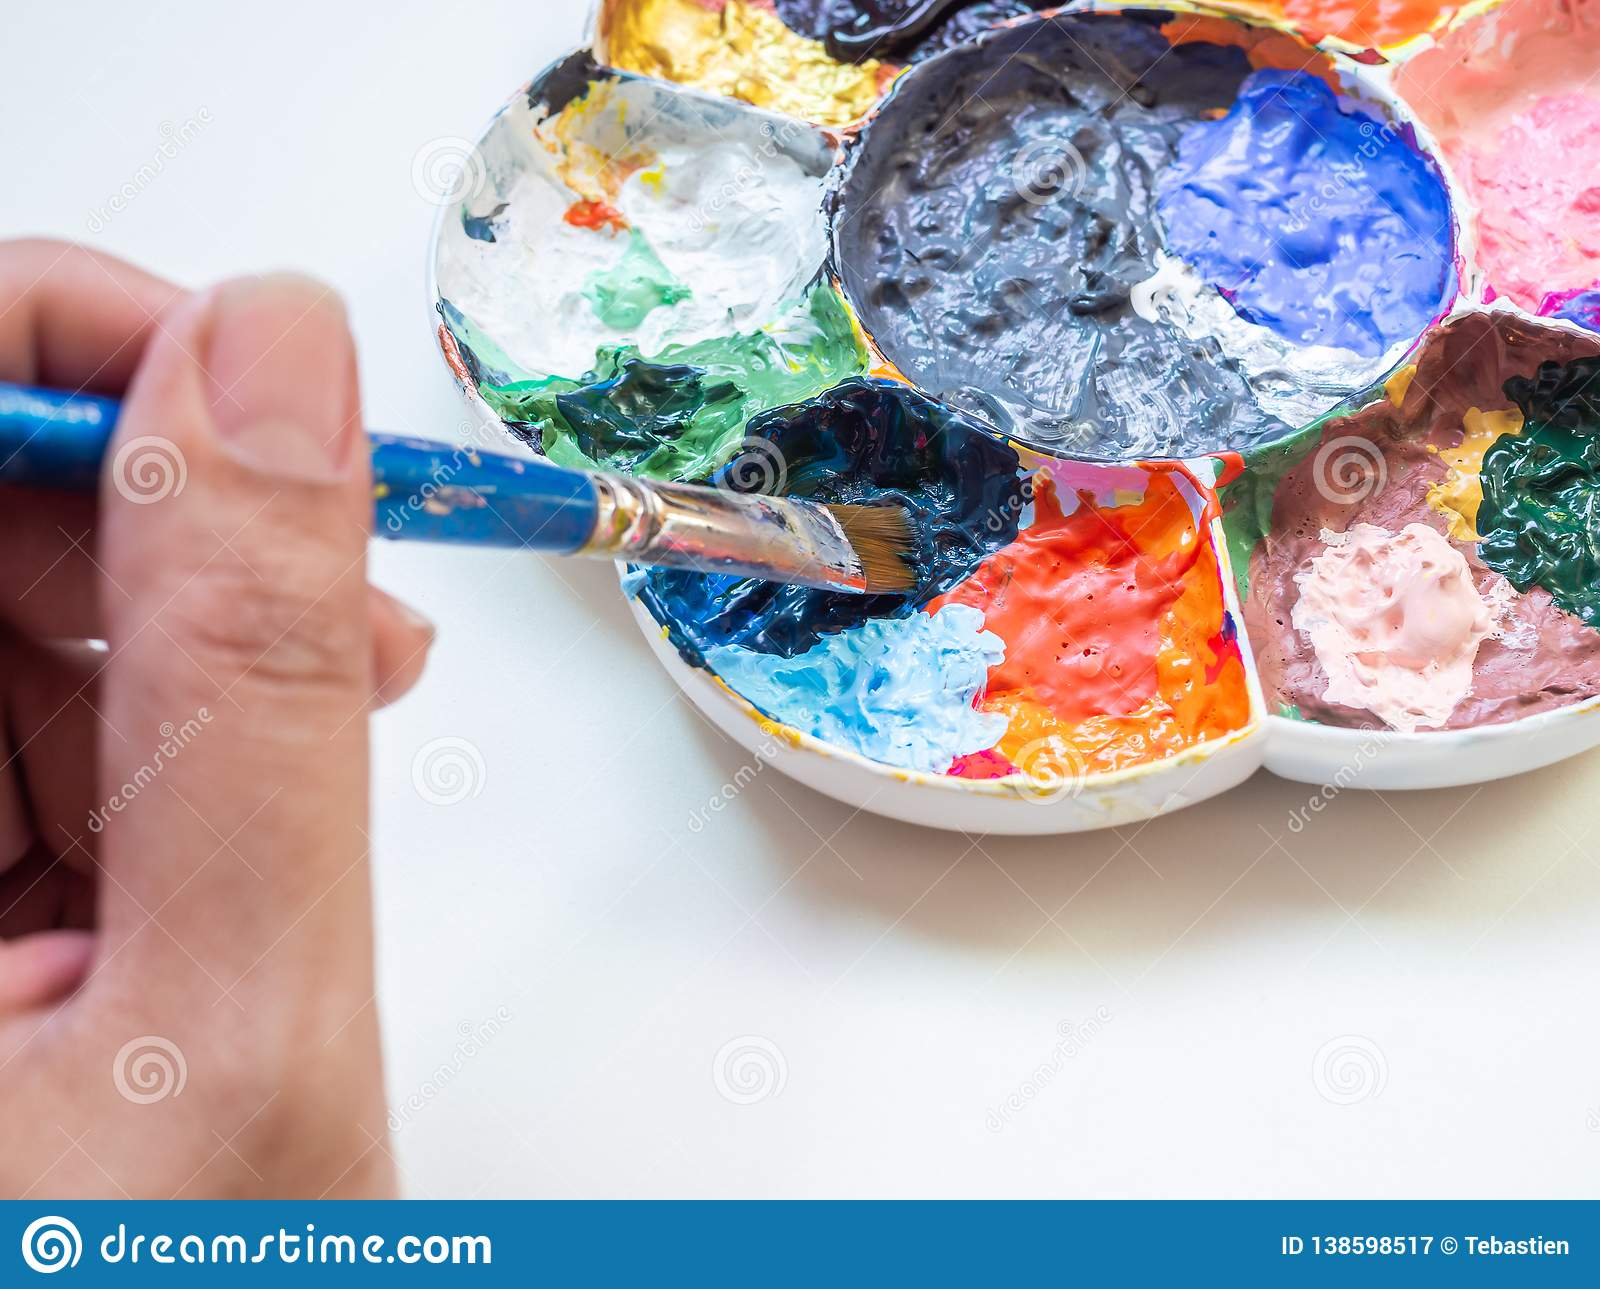 Artist Hand Mixing Acrylic Paint Color With Brush In